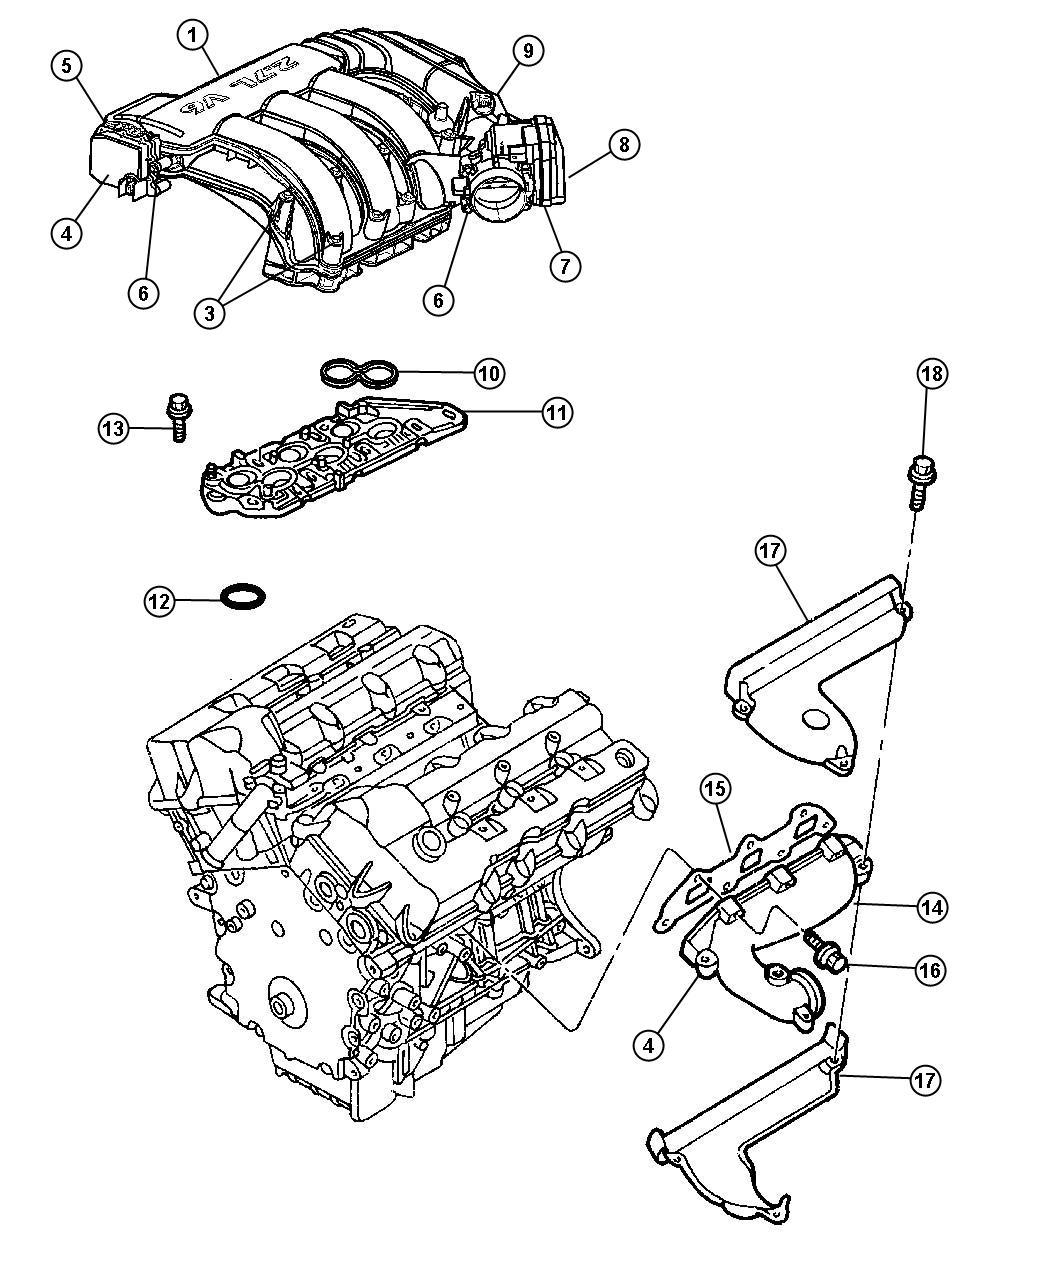 chrysler 300 5 7 hemi engine diagram